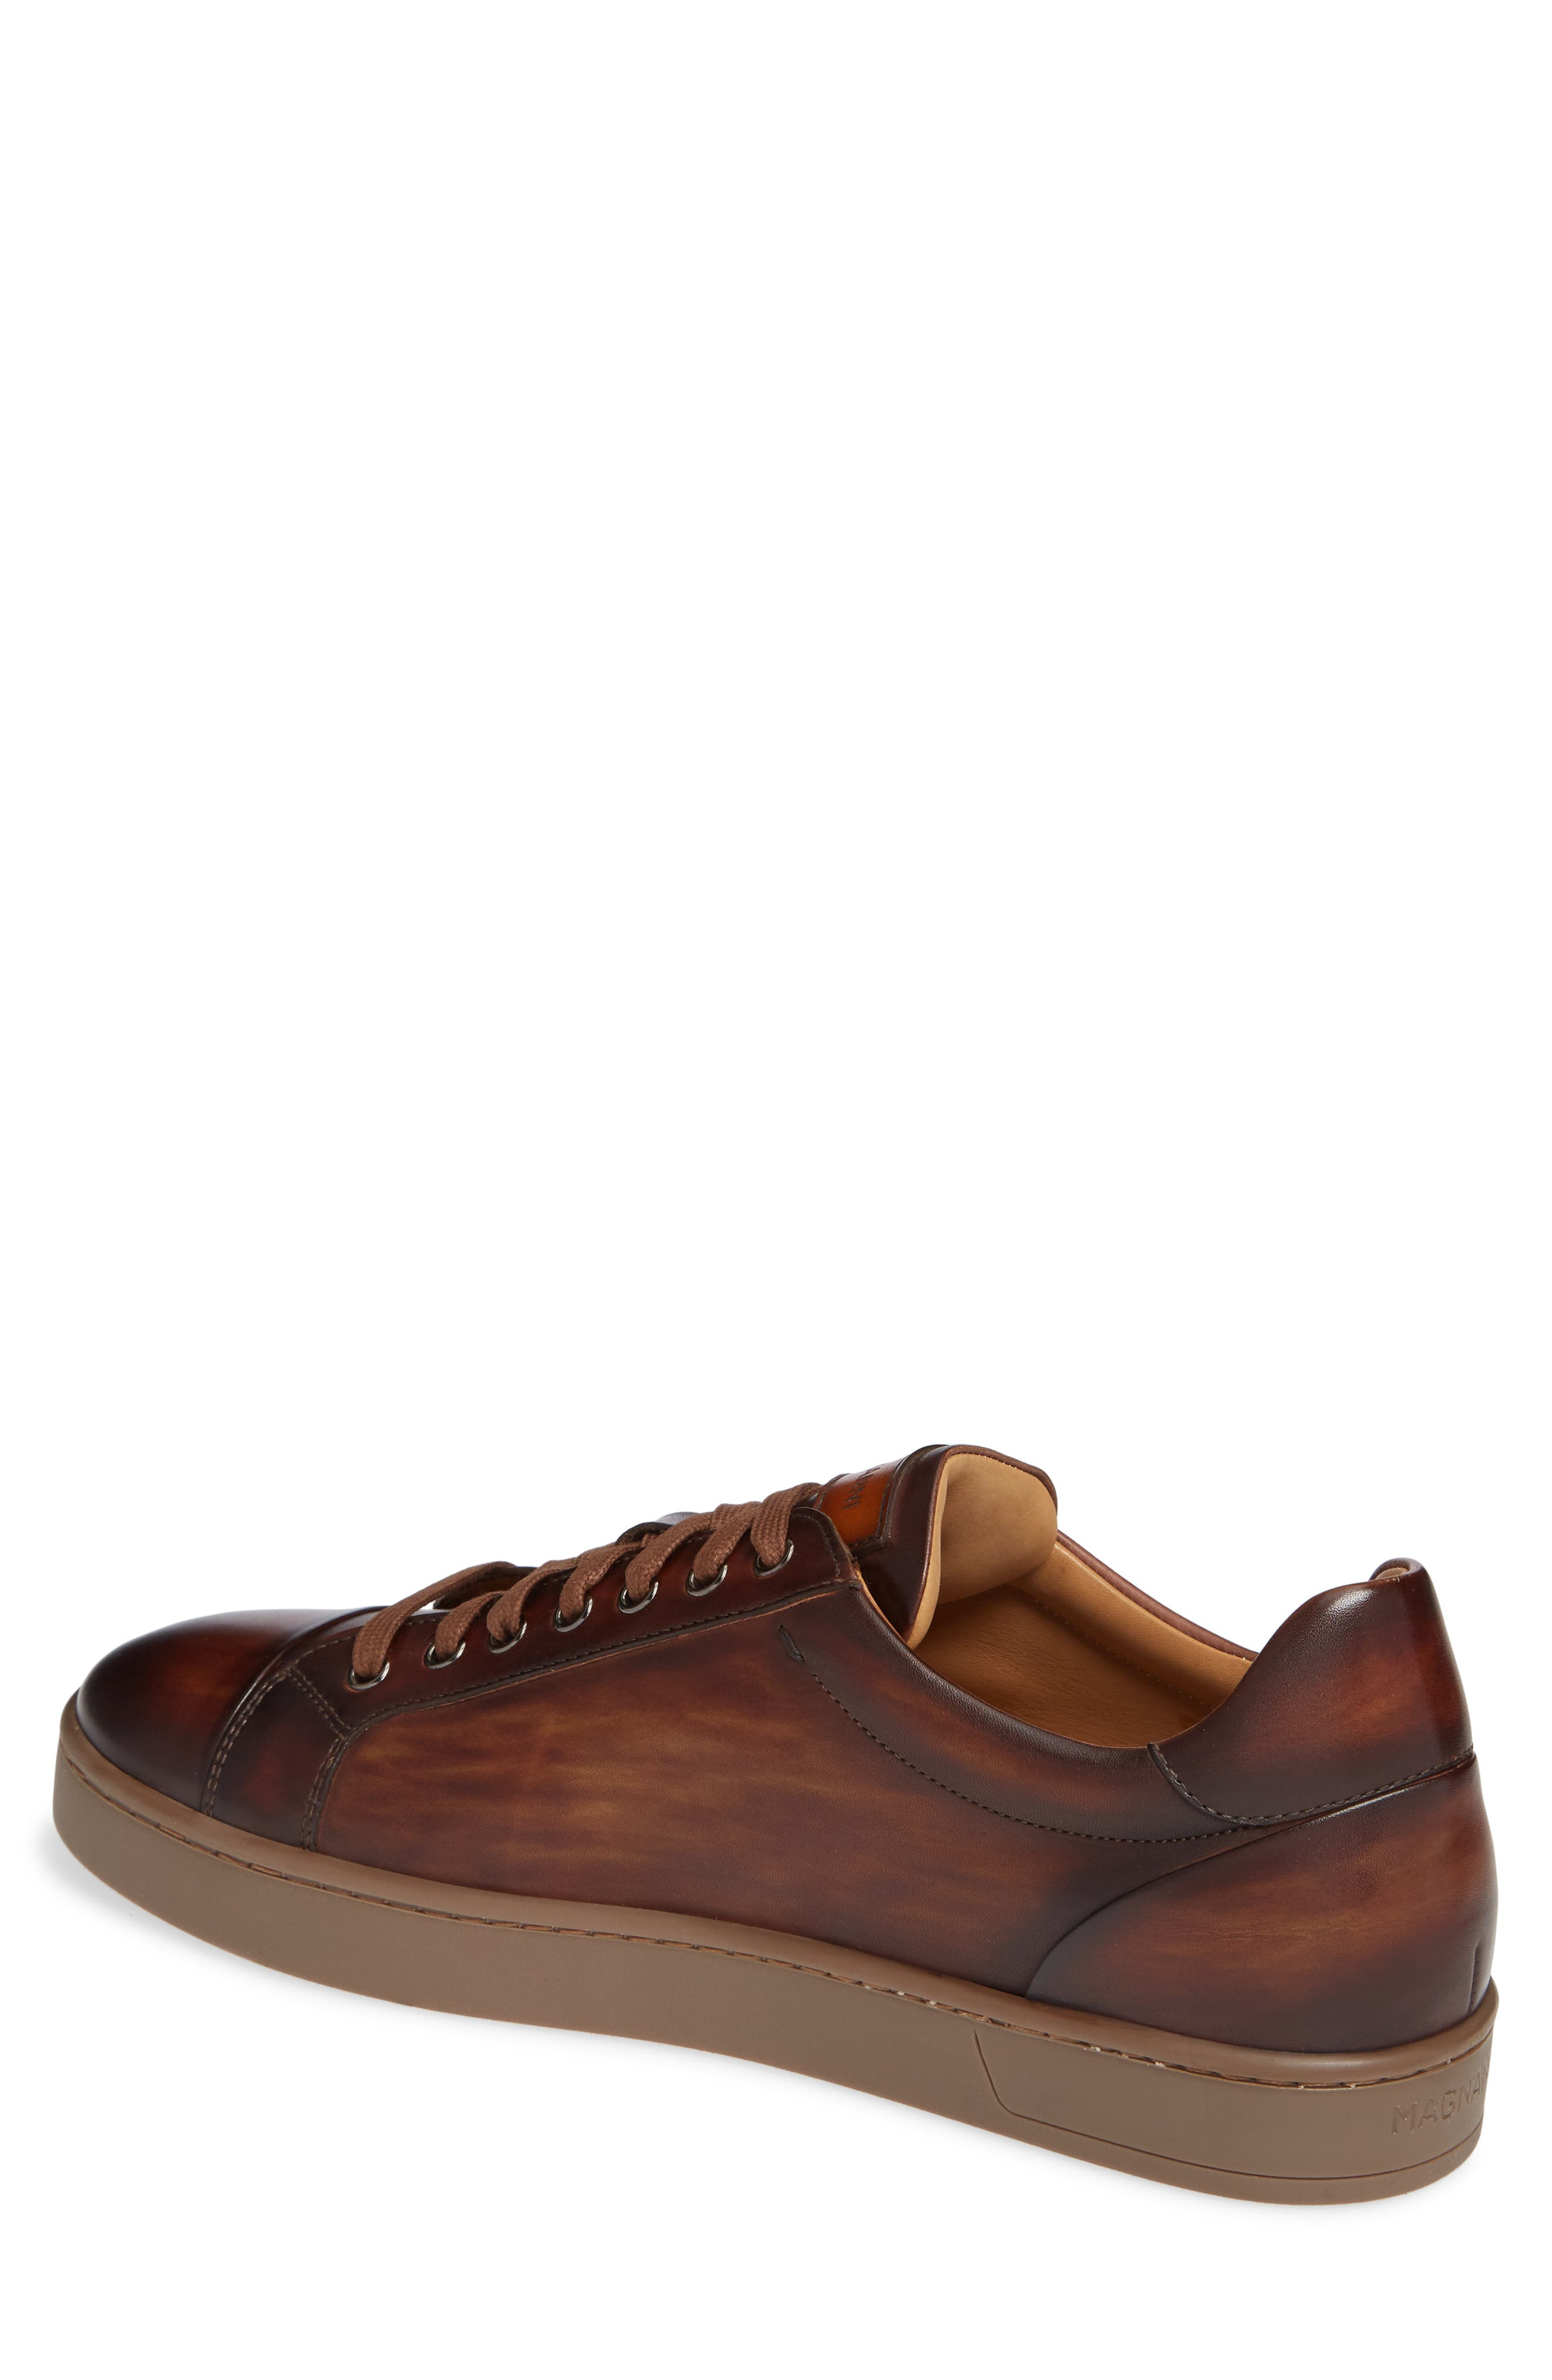 Caitin Sneaker,                             Alternate thumbnail 2, color,                             TABACO LEATHER